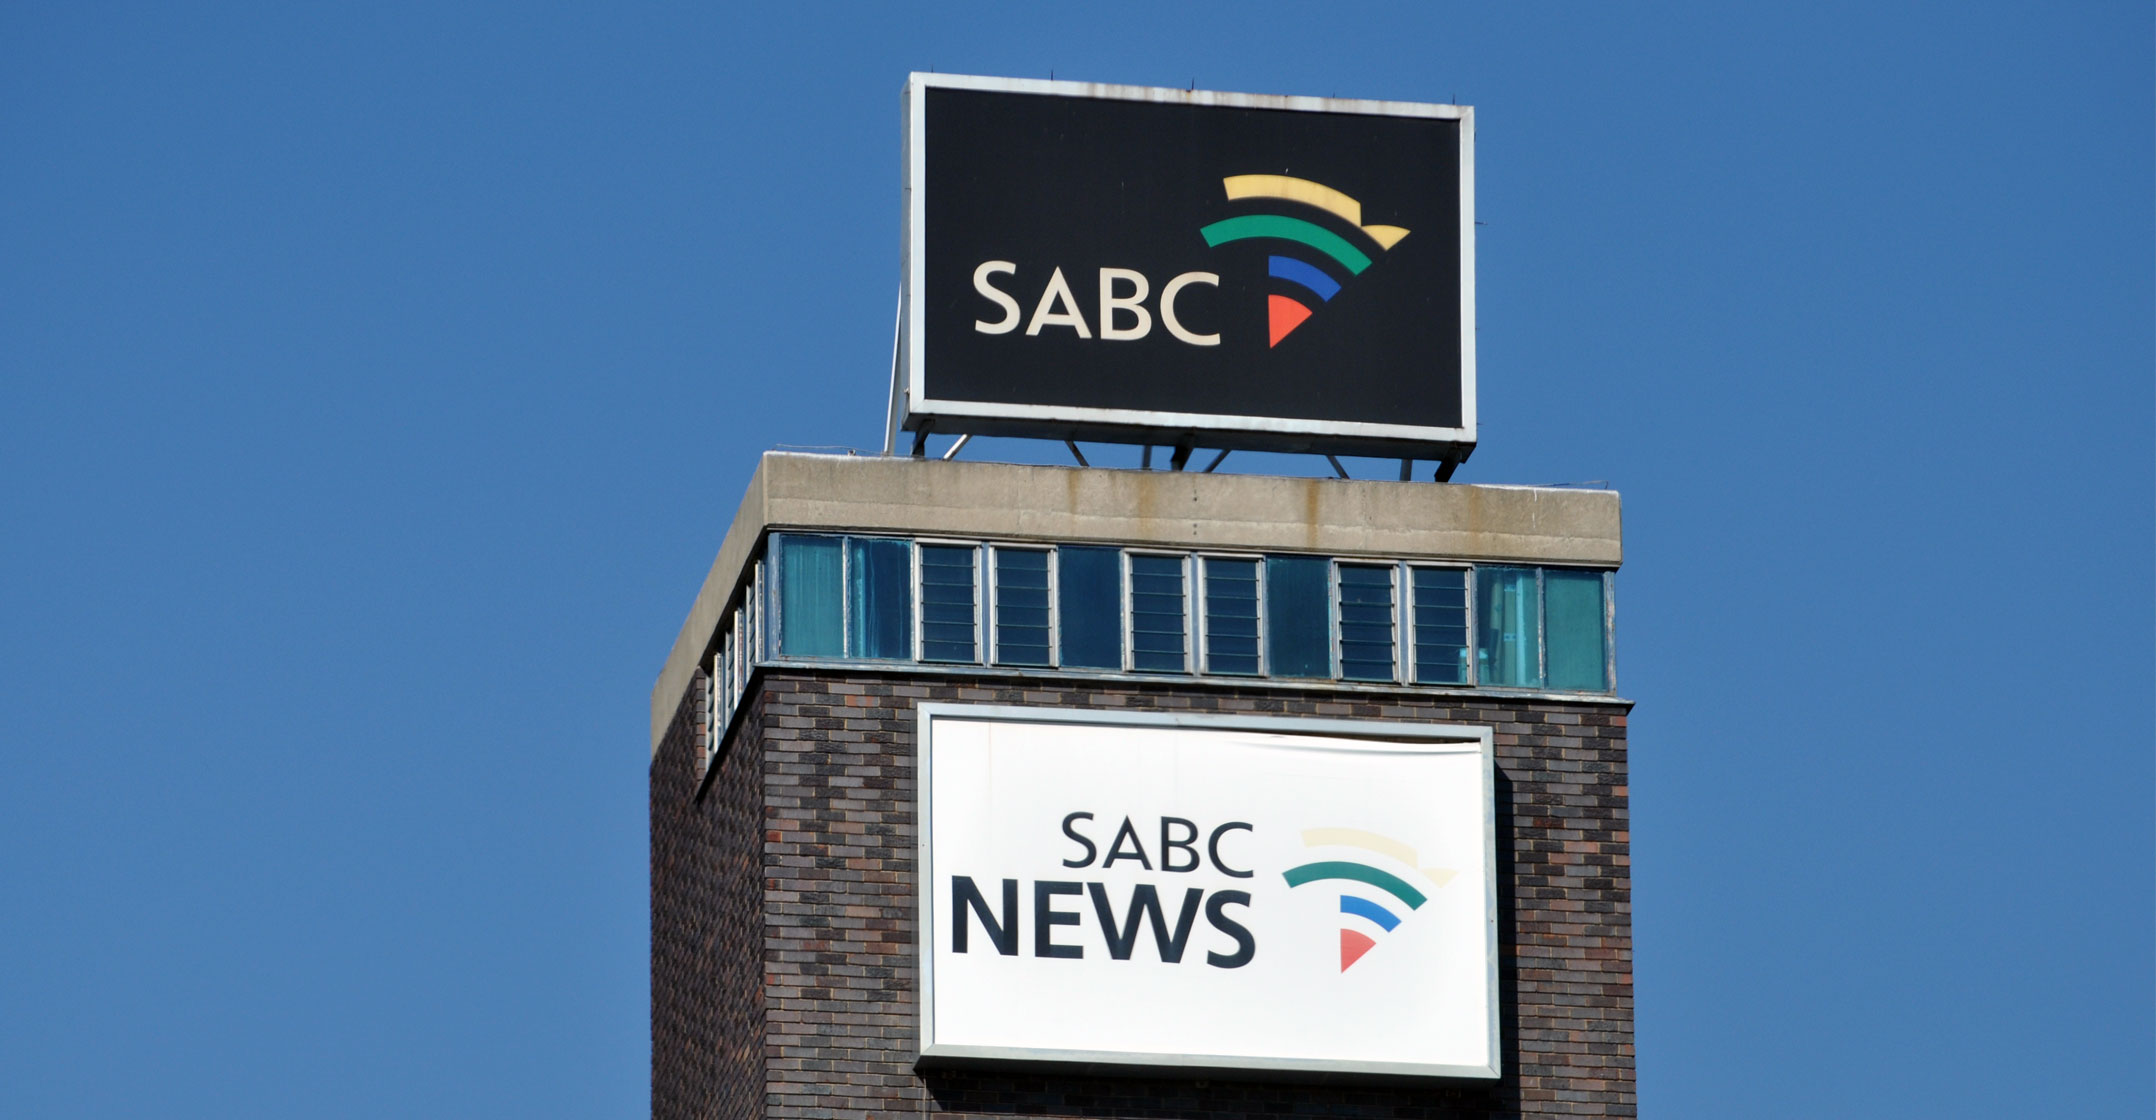 Concerns over SABC board chairs' closeness to Zuma family